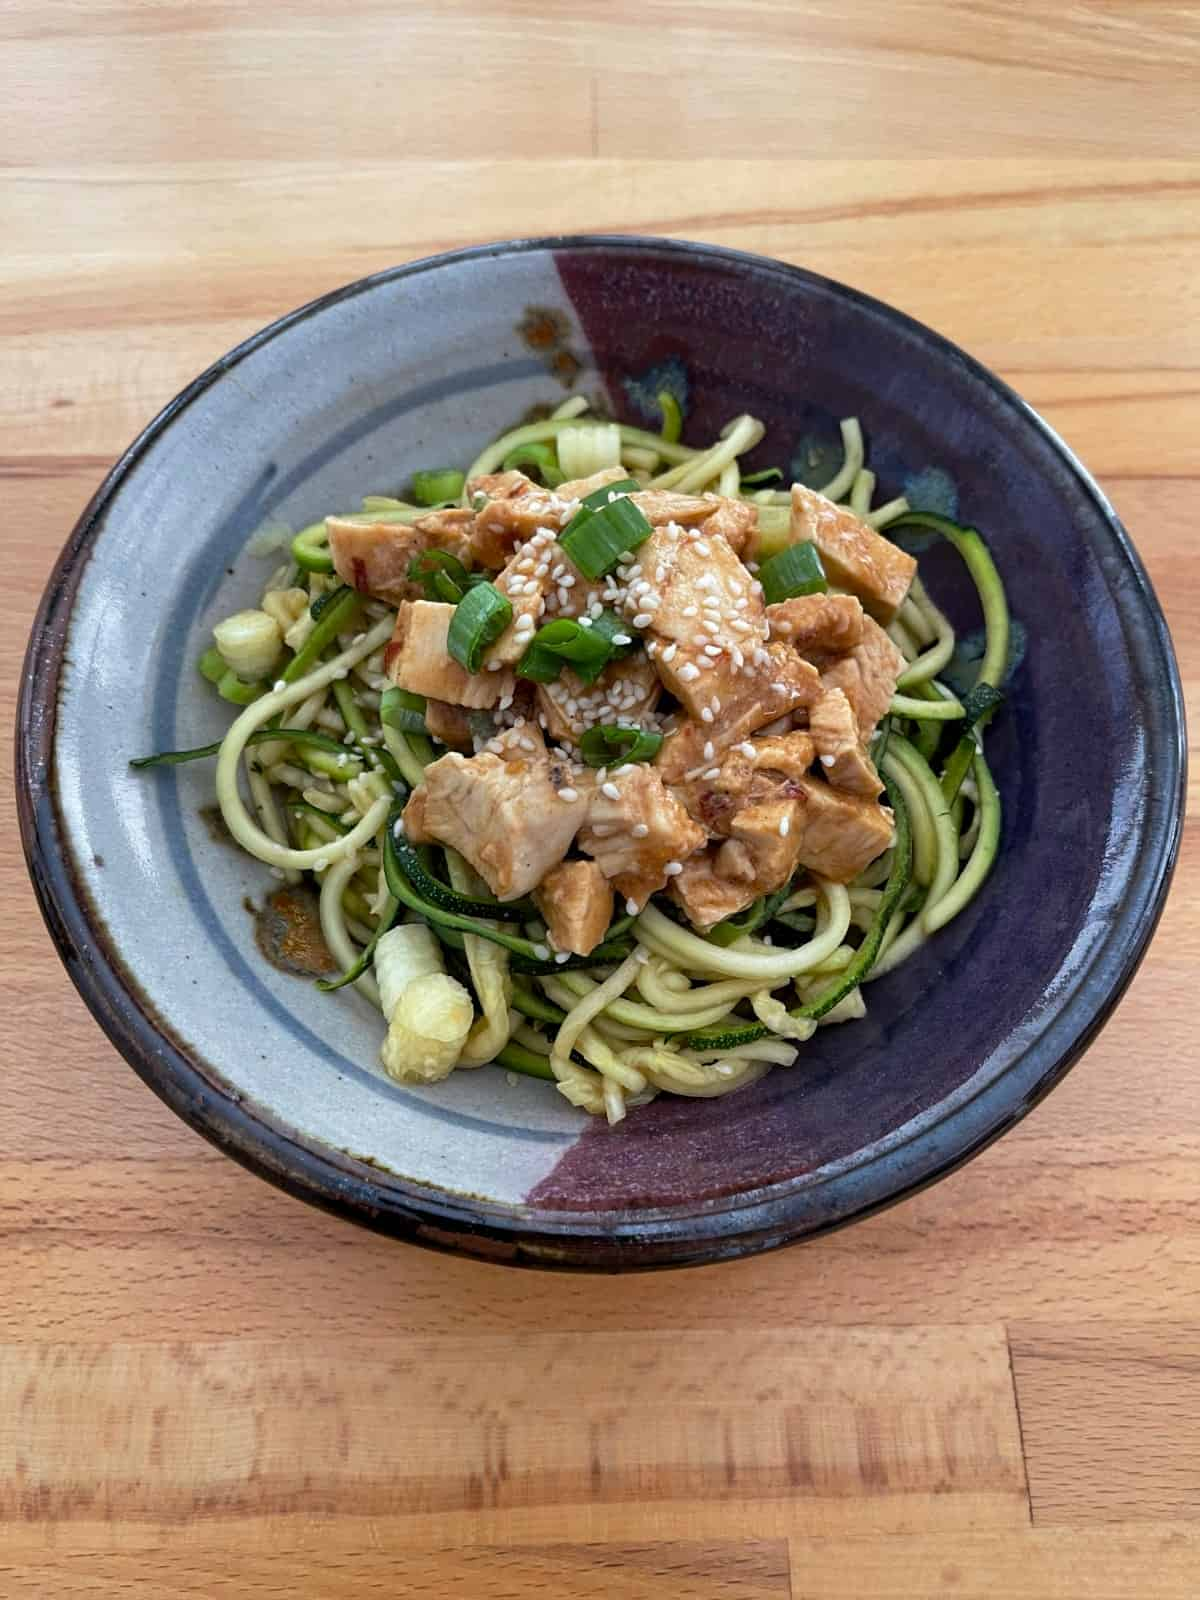 Sesame zucchini noodles with chicken in ceramic bowl on wood table.